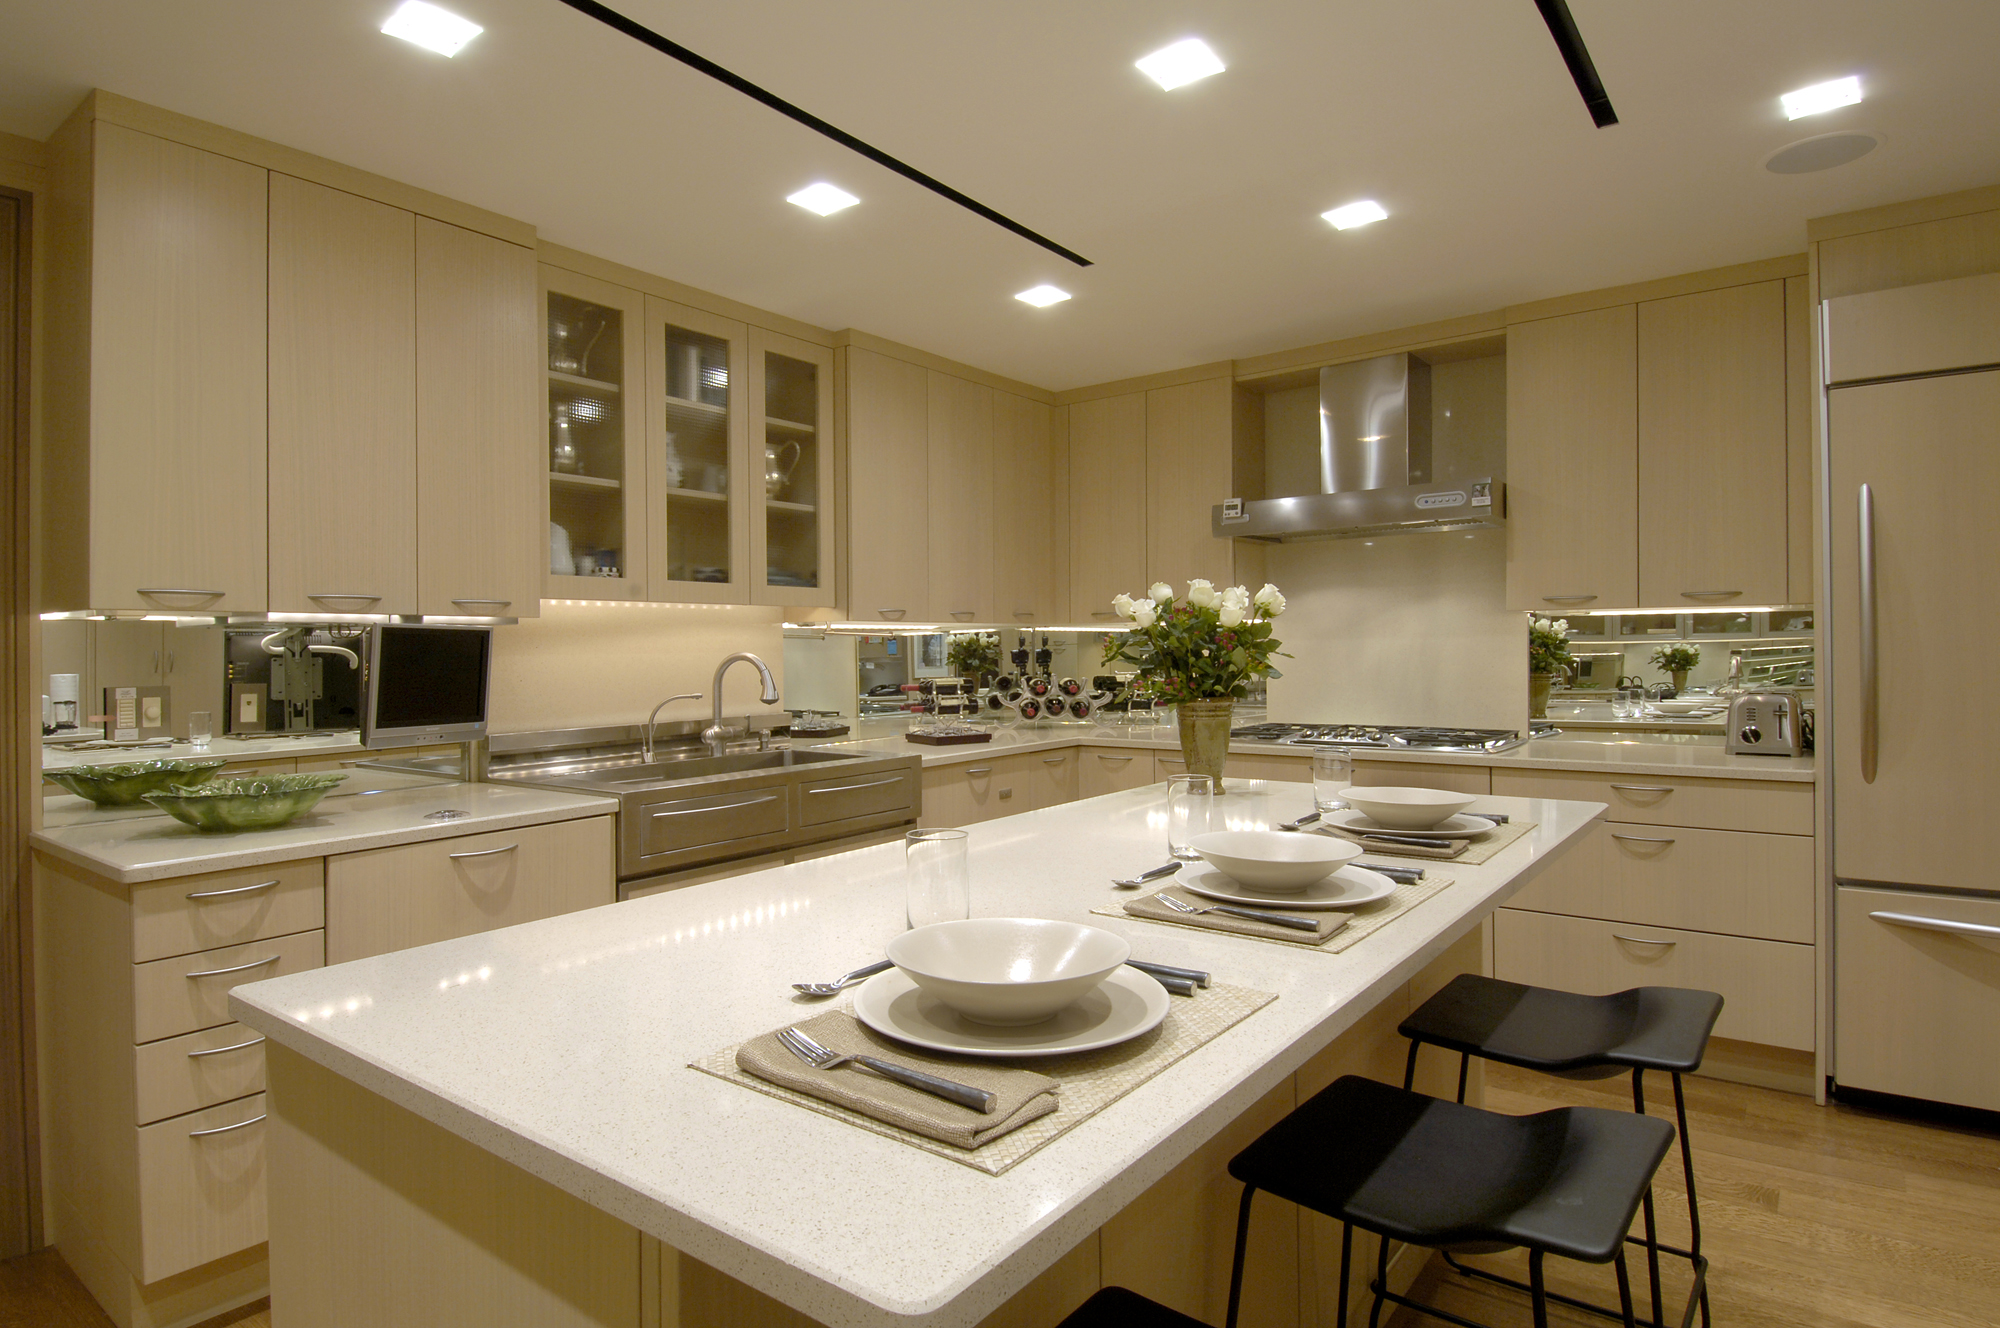 Small Condo Kitchen Award Winning Condominium Penthouse Renovation In Washington Dc